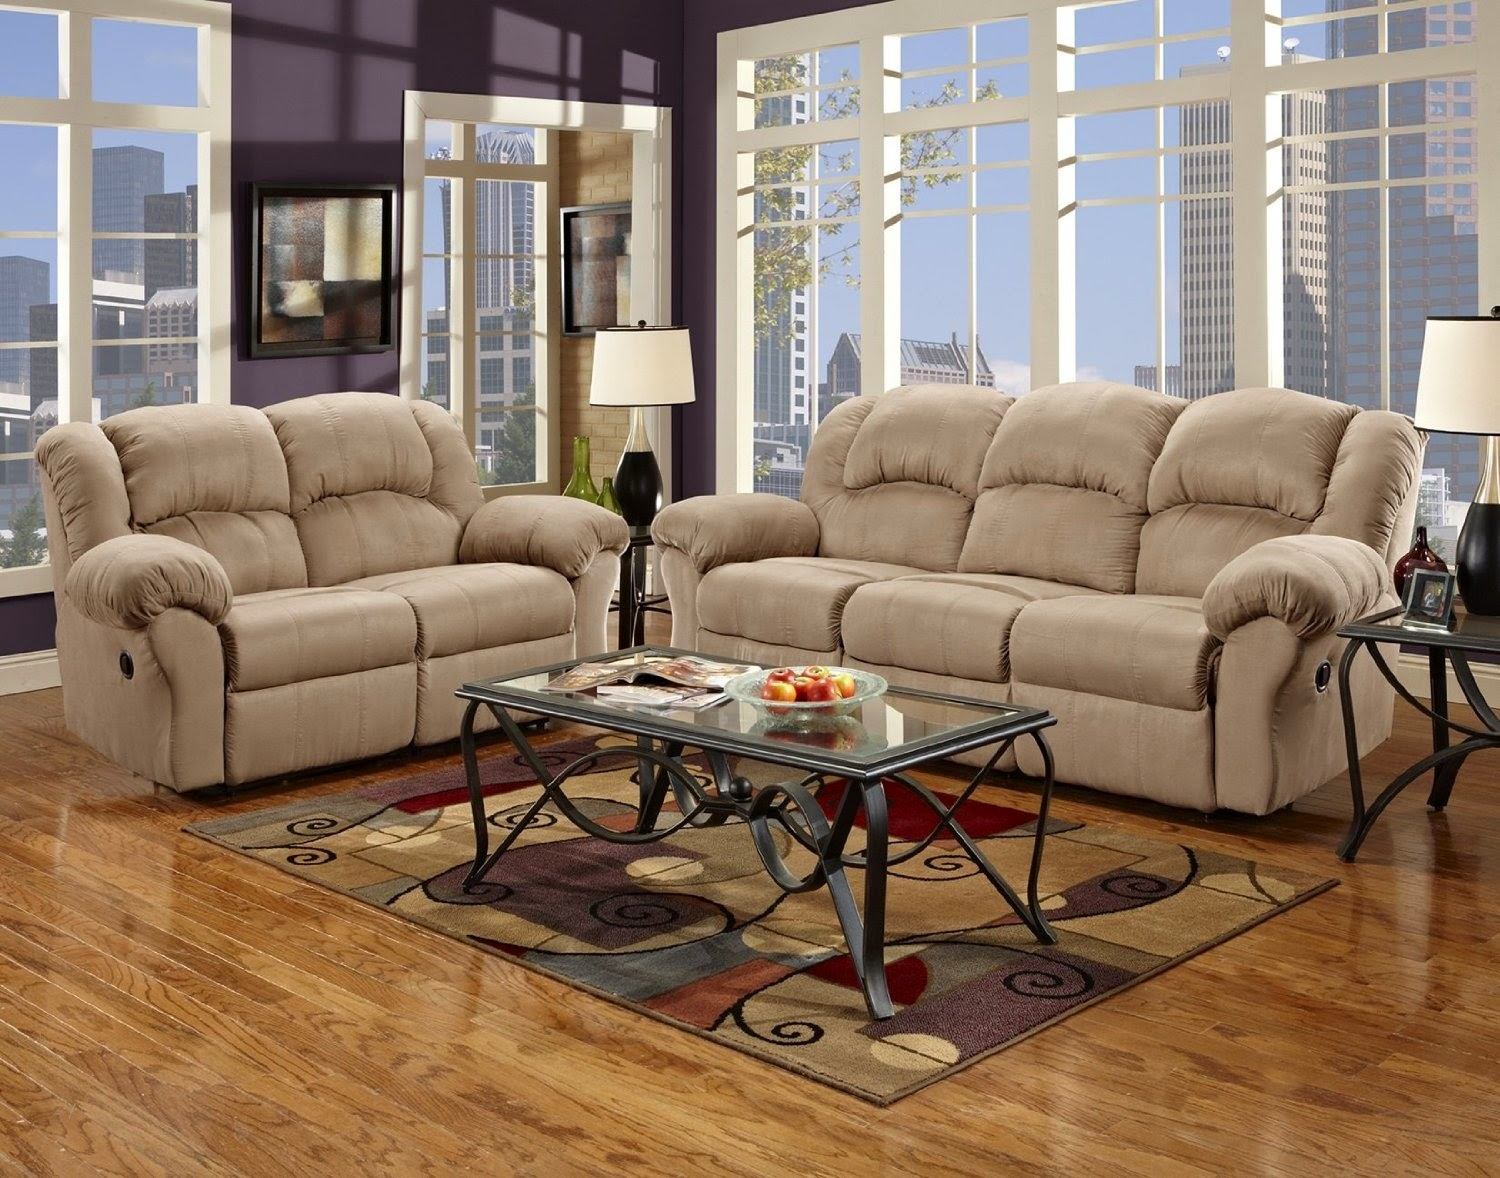 Fabulous Reclining Loveseats For Sale Mysterabbit Com Gmtry Best Dining Table And Chair Ideas Images Gmtryco